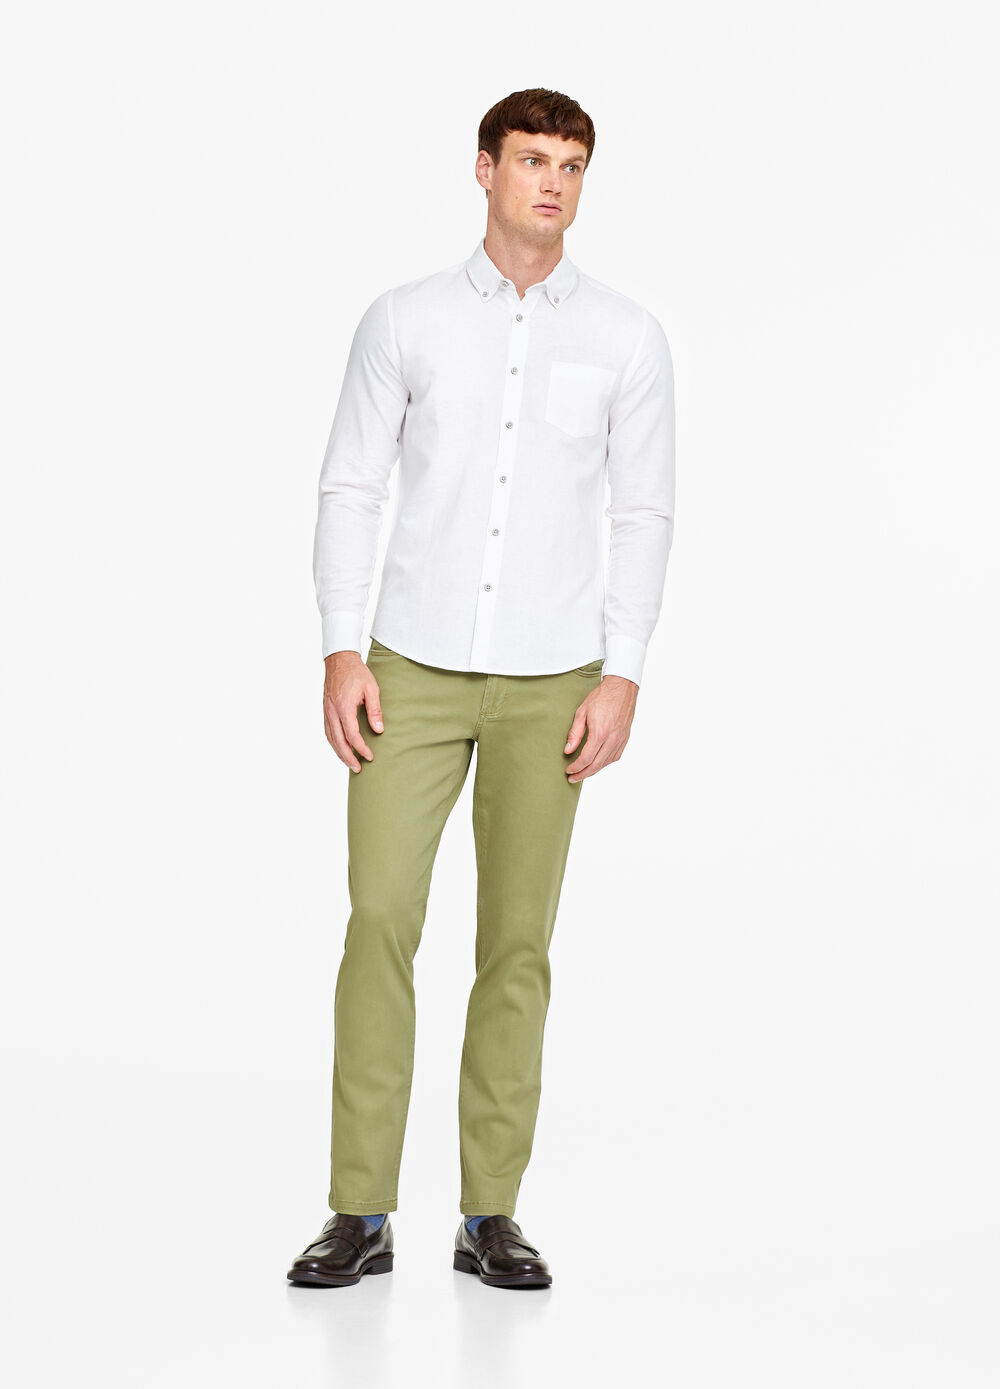 Solid colour, slim-fit stretch trousers